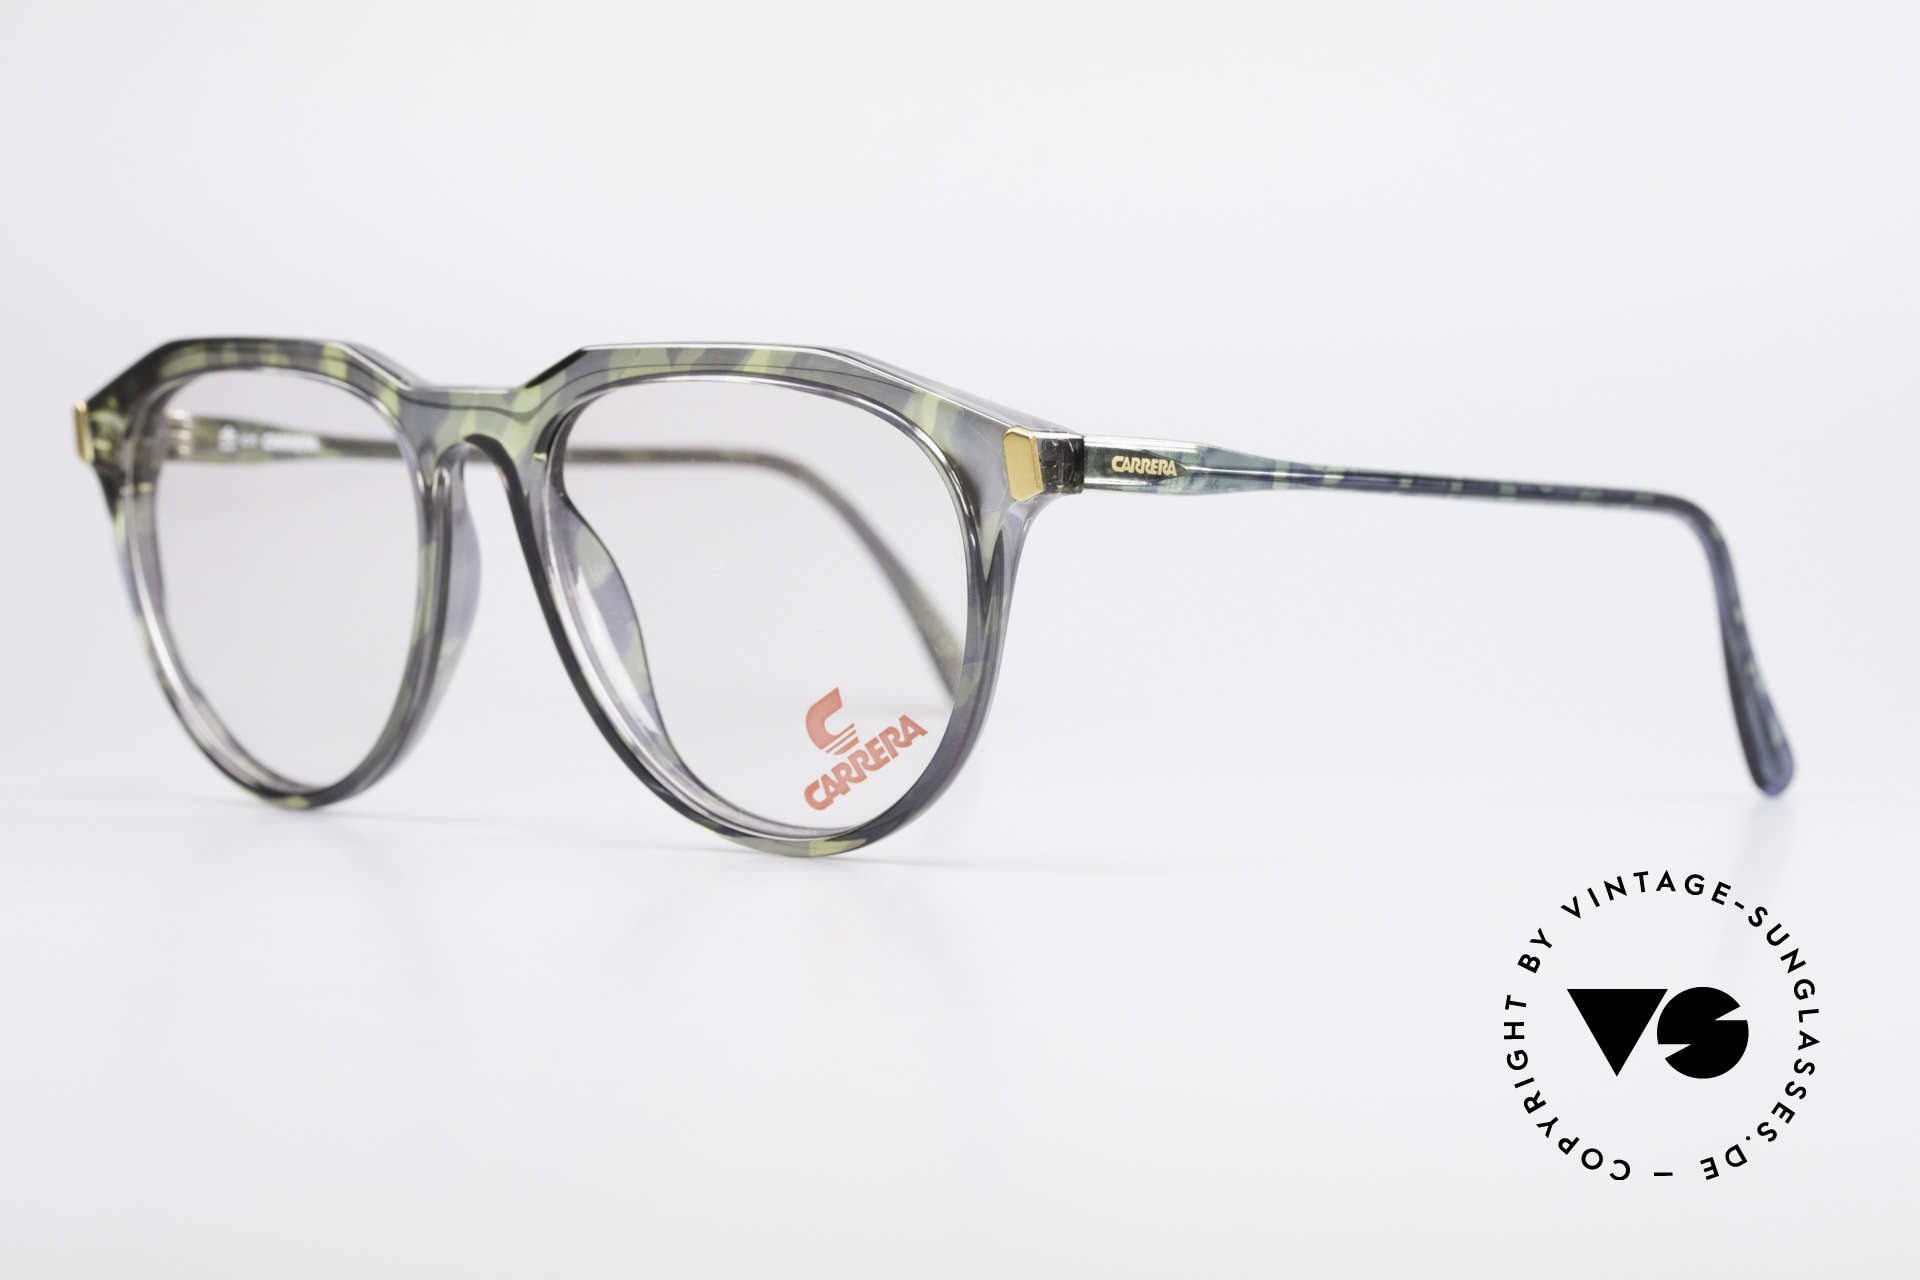 Carrera 5361 90's Optyl Panto Eyeglasses, lightweight & thus accordingly pleasant to wear, Made for Men